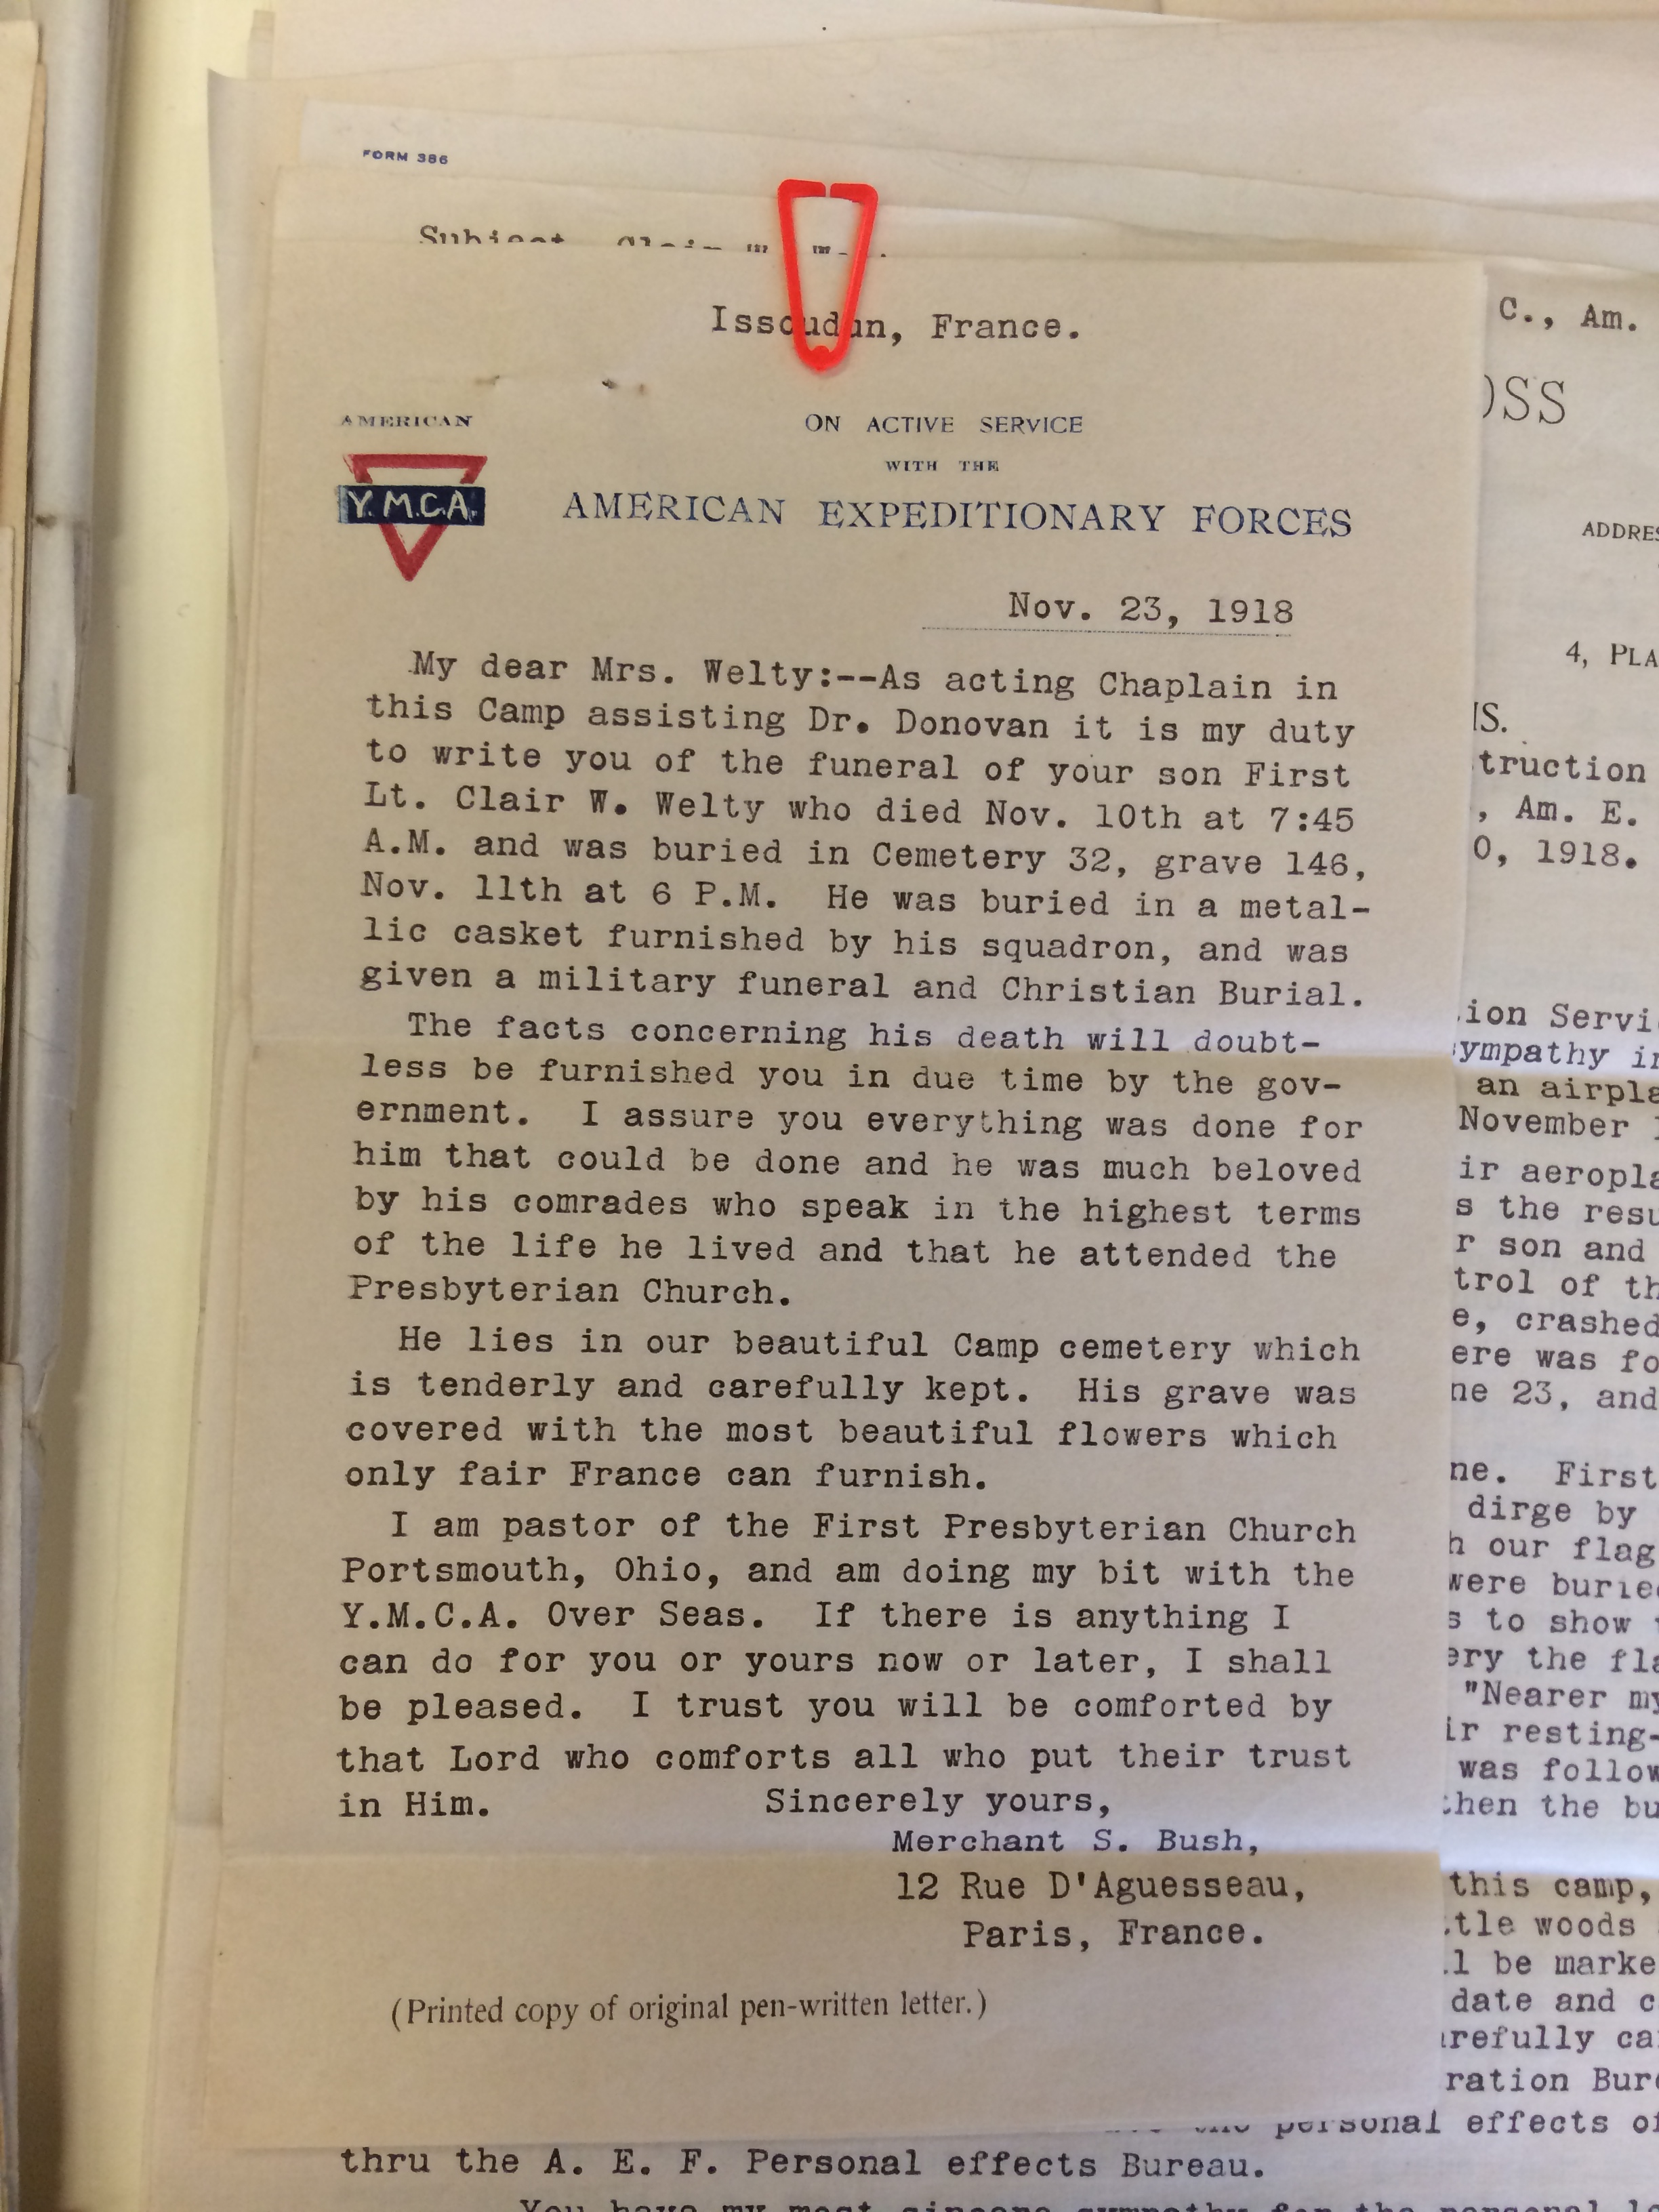 Letter from Rev. Merchant S. Bush to Mrs. A. J. Welty, 23 Nov. 1918 (from MS-196).